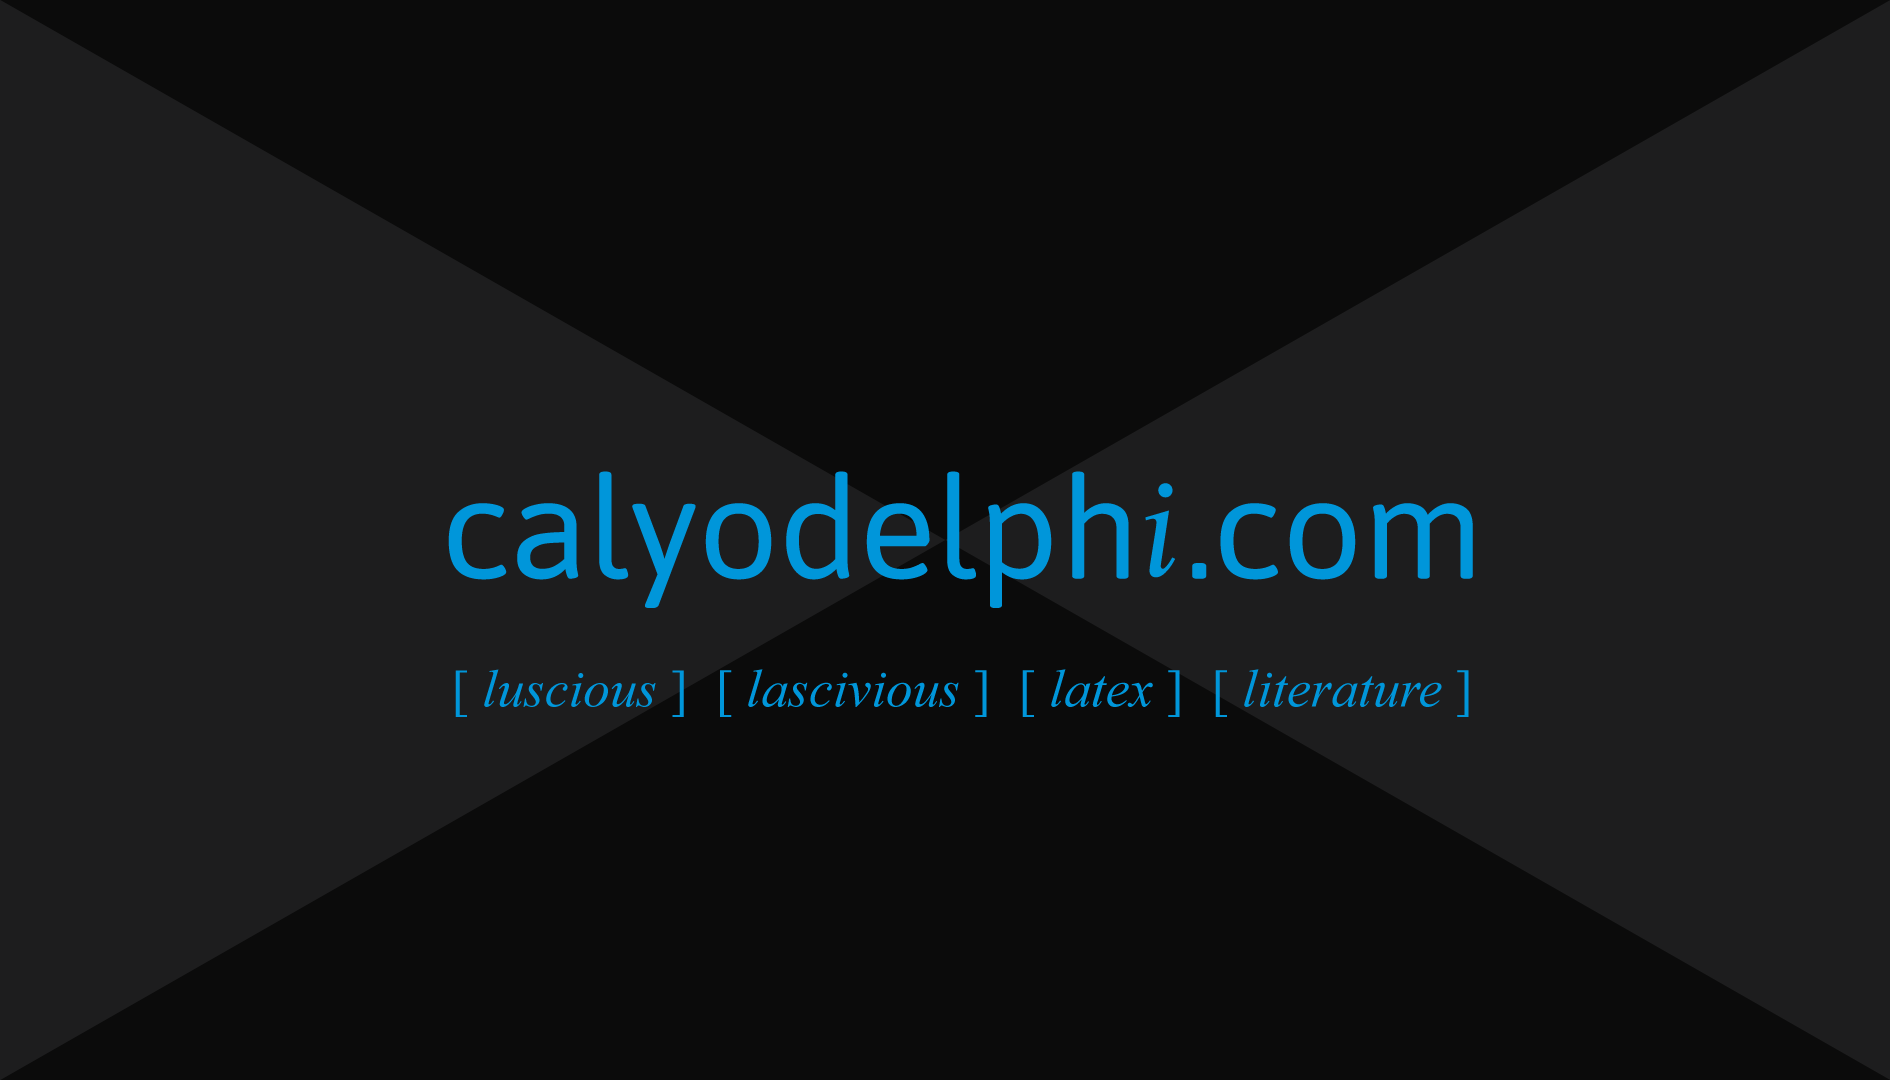 The website domain, calyodelphi.com, with a stylized i, in radioactive blue text on a black background, centered, with four keywords below, each surrounded by square brackets: luscious, lascivious, latex, literature.